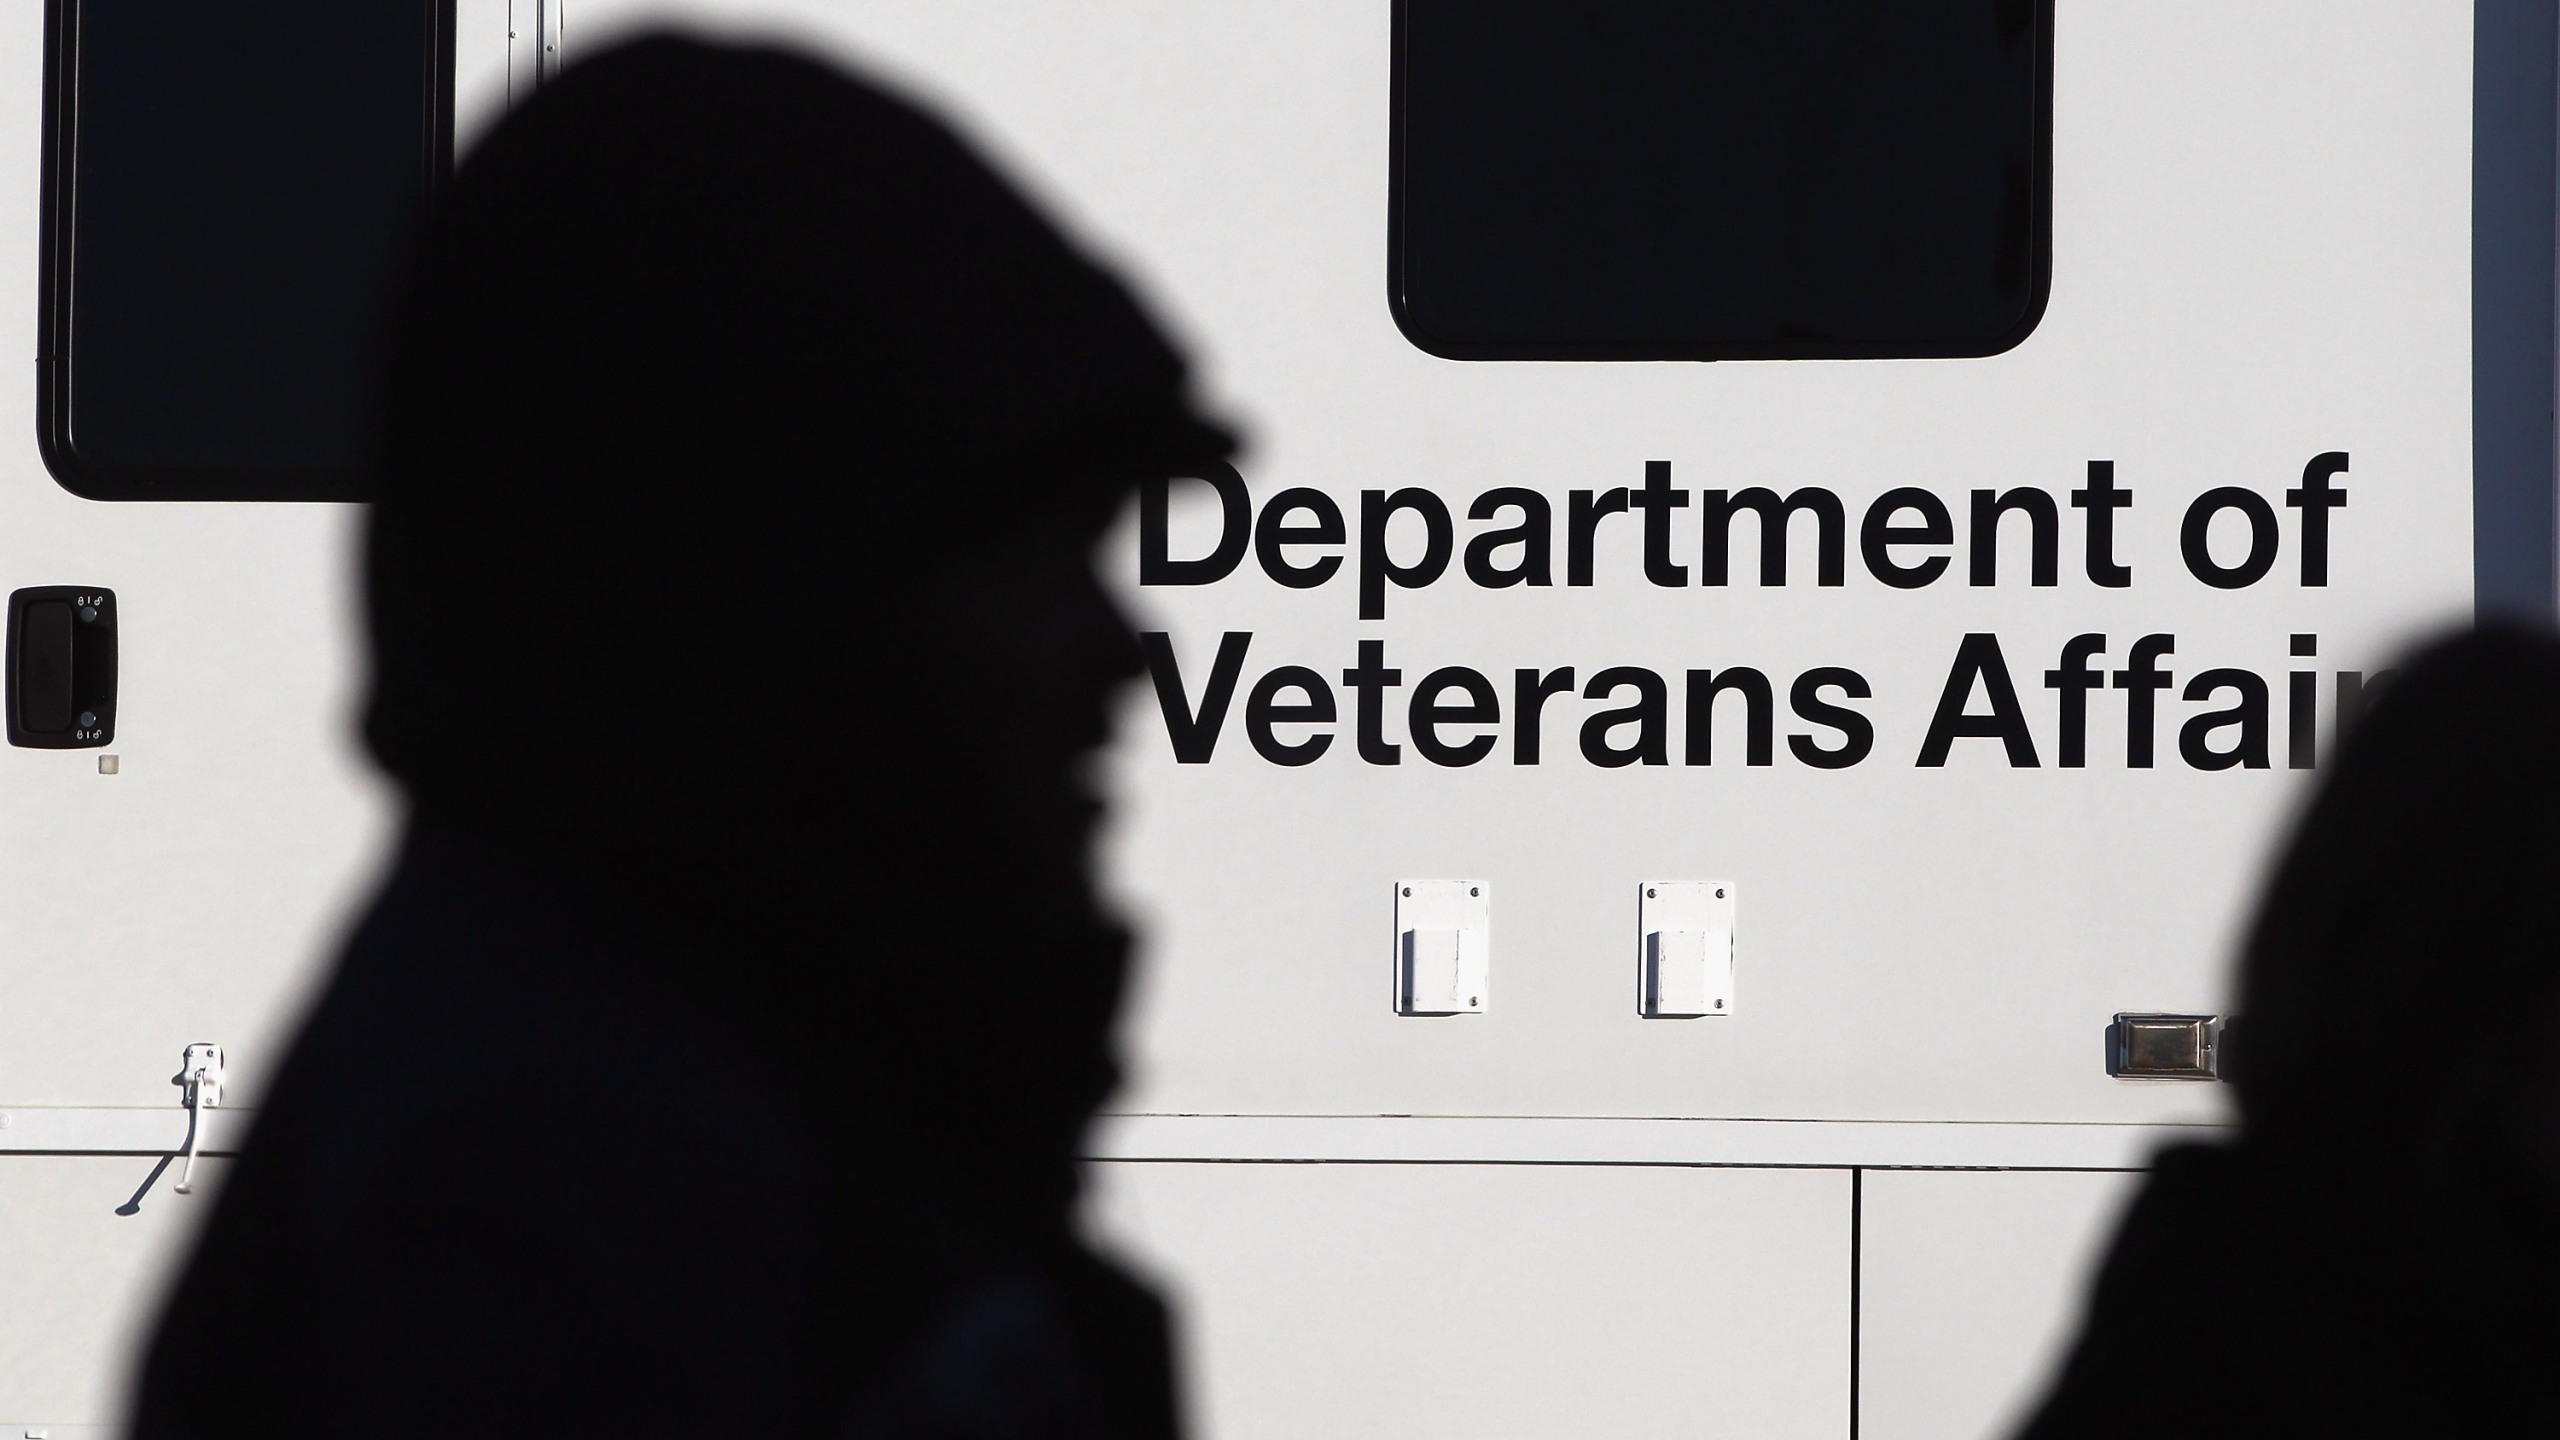 A sign for the Department of Veterans Affairs is seen at an agency event on Nov. 3, 2011, in Denver, Colorado. (John Moore/Getty Images)